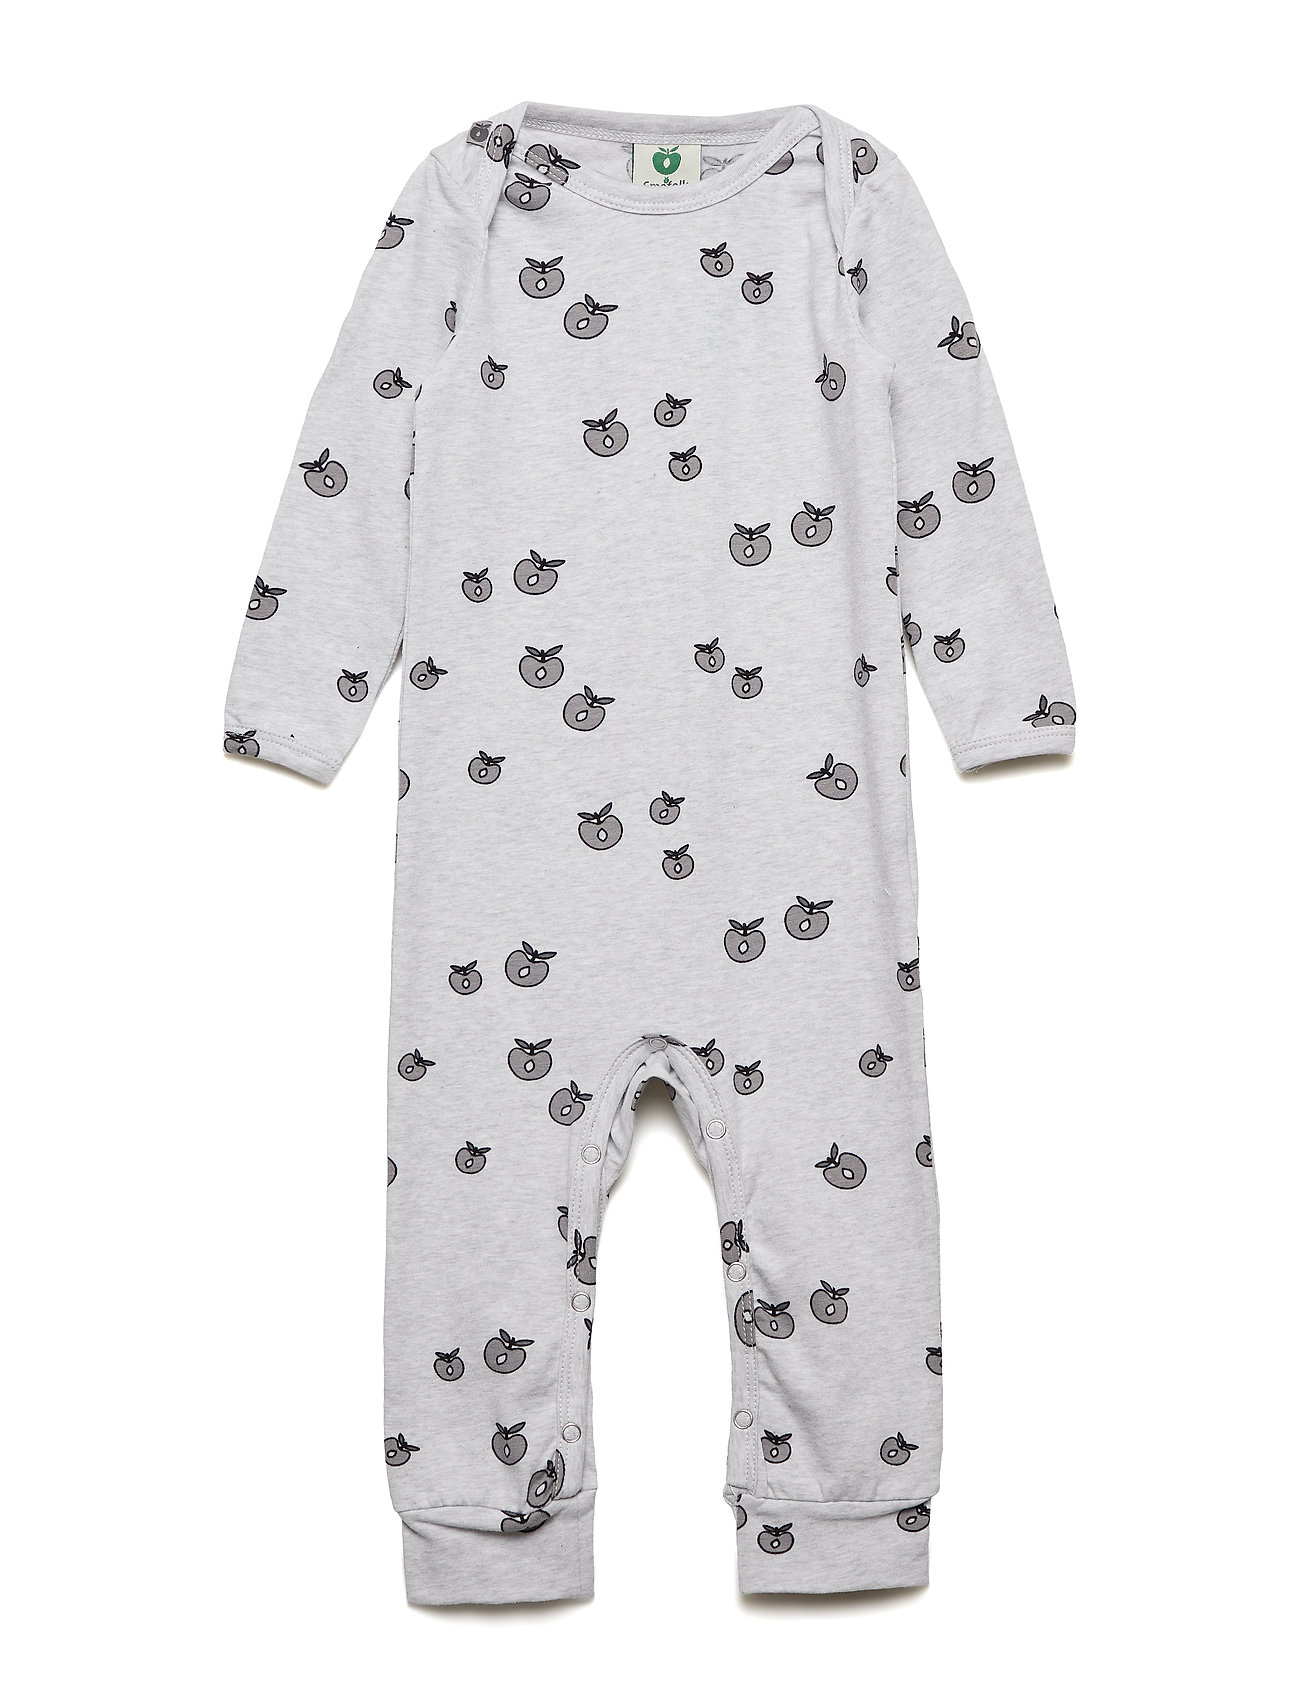 Småfolk Body Suit, Apple. Originals. - LT. GREY MIX